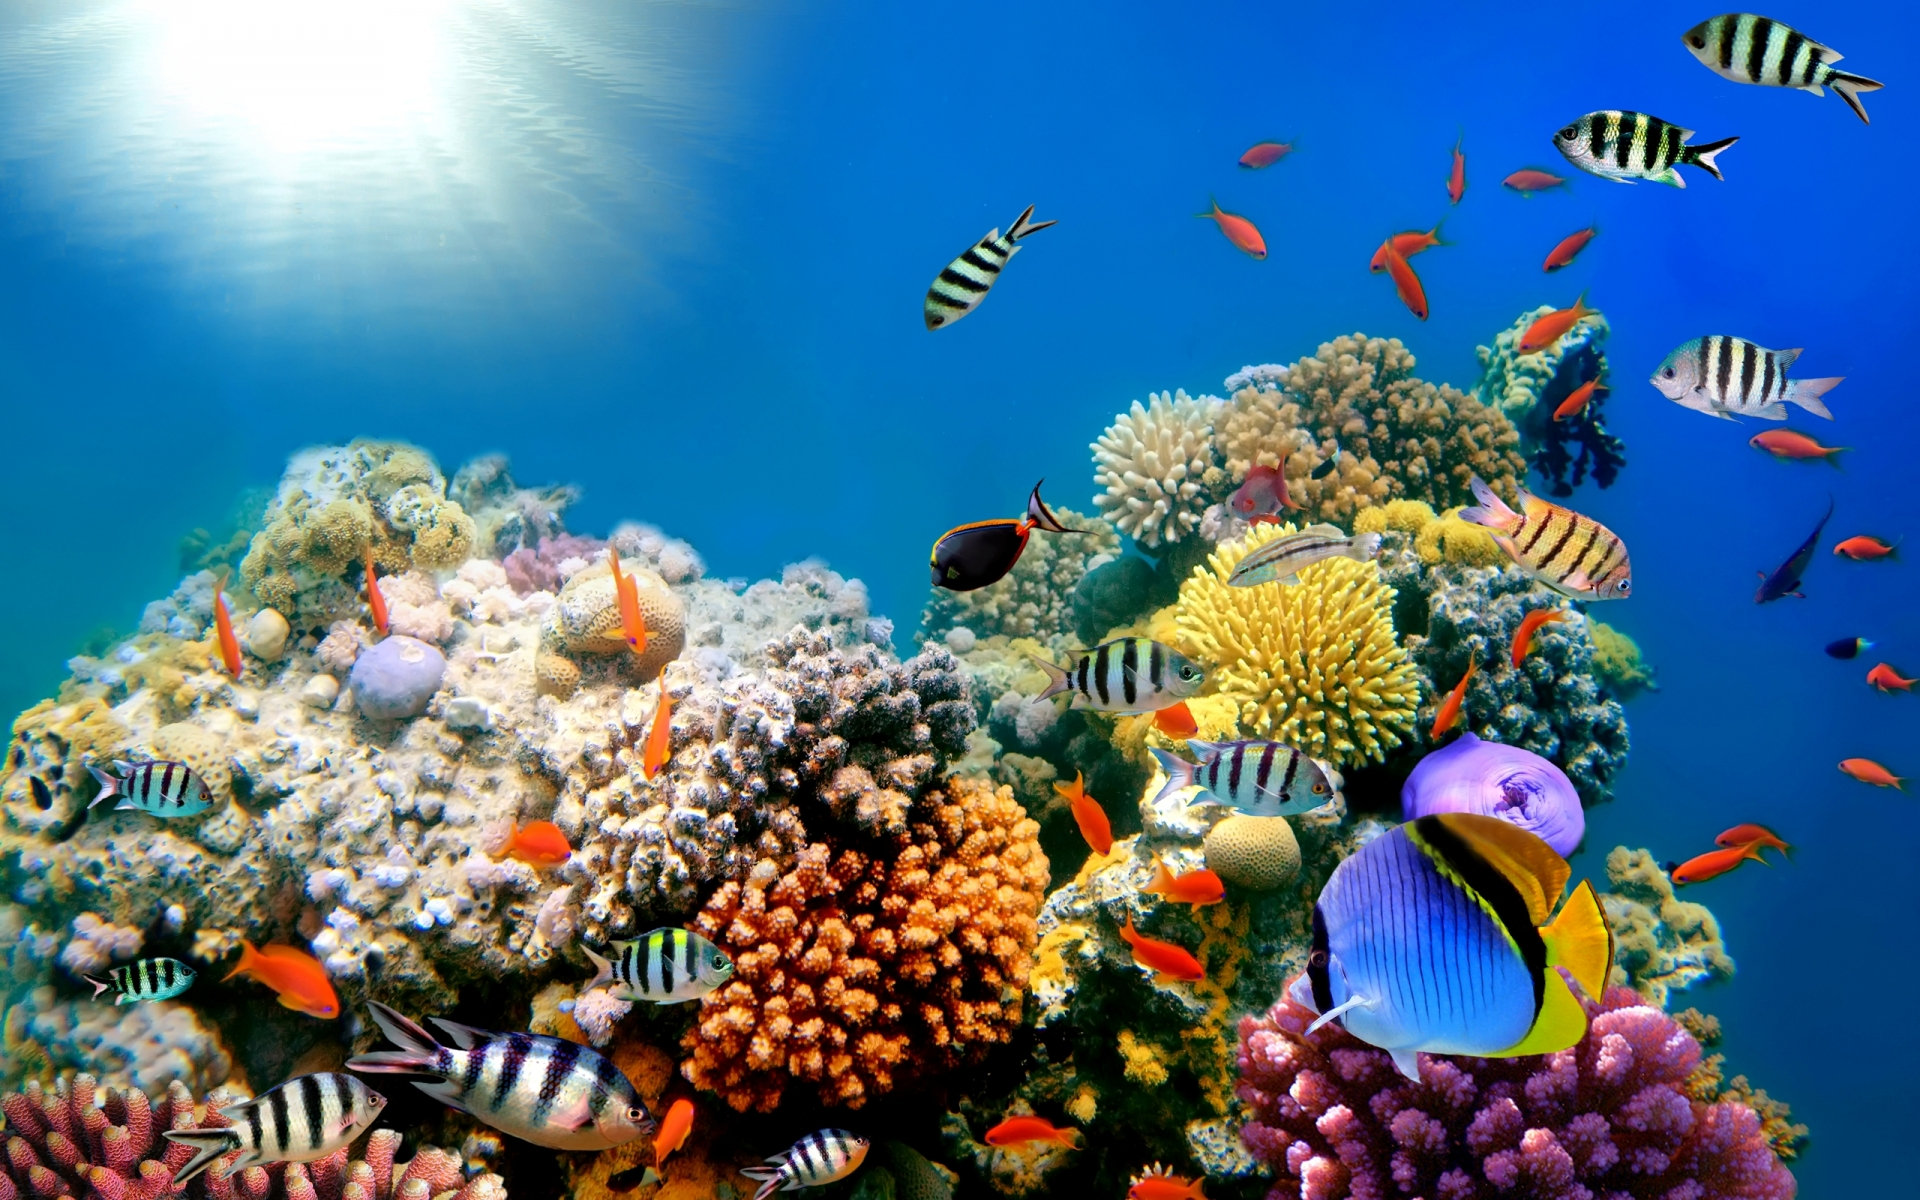 Desktop Backgrounds chillcovercom Underwater Ocean Coral Desktop 1920x1200